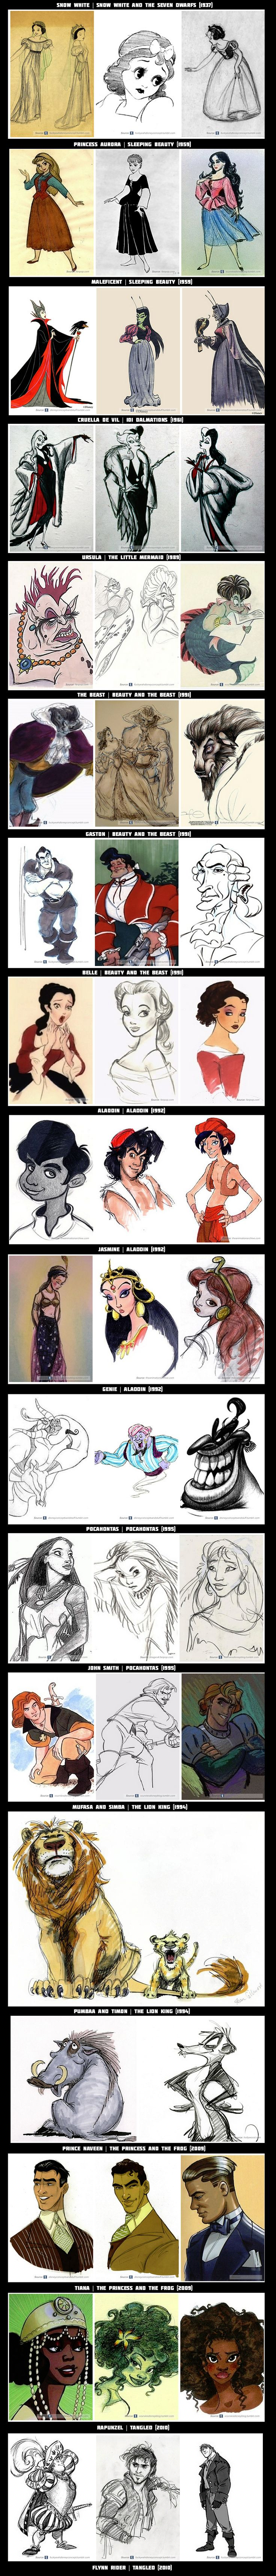 Disney concept art! So cool! But I didn't know they had an idea to make genie scary o.O